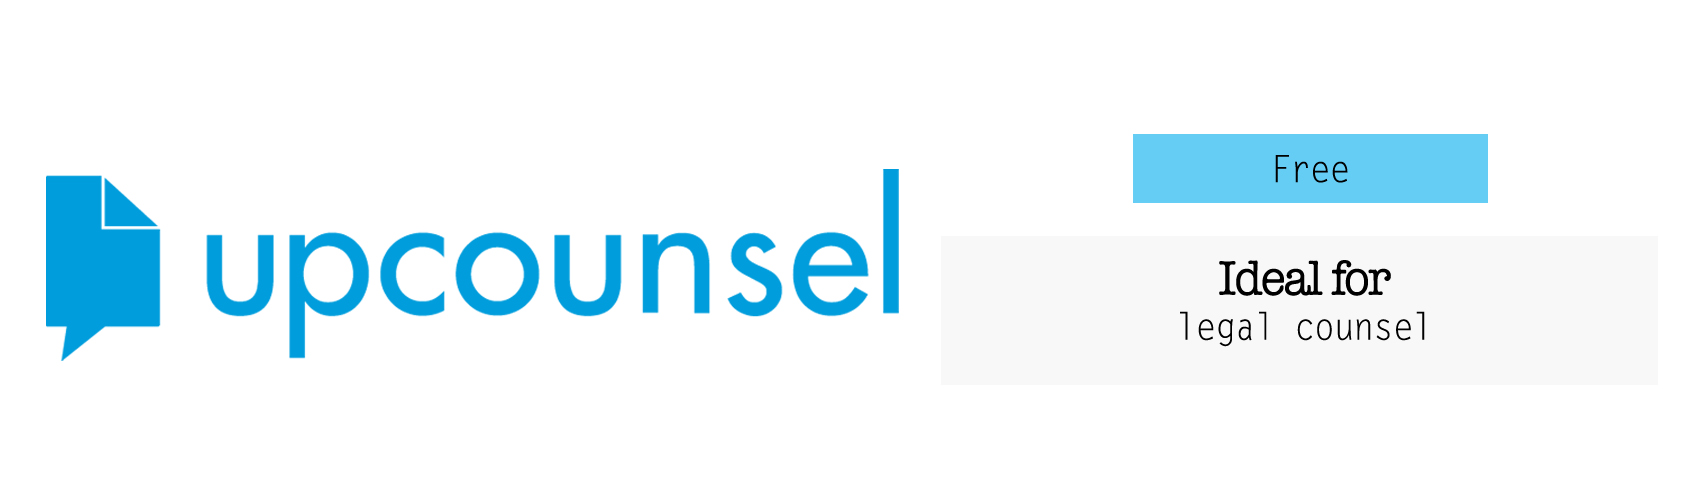 Upcounsel legal